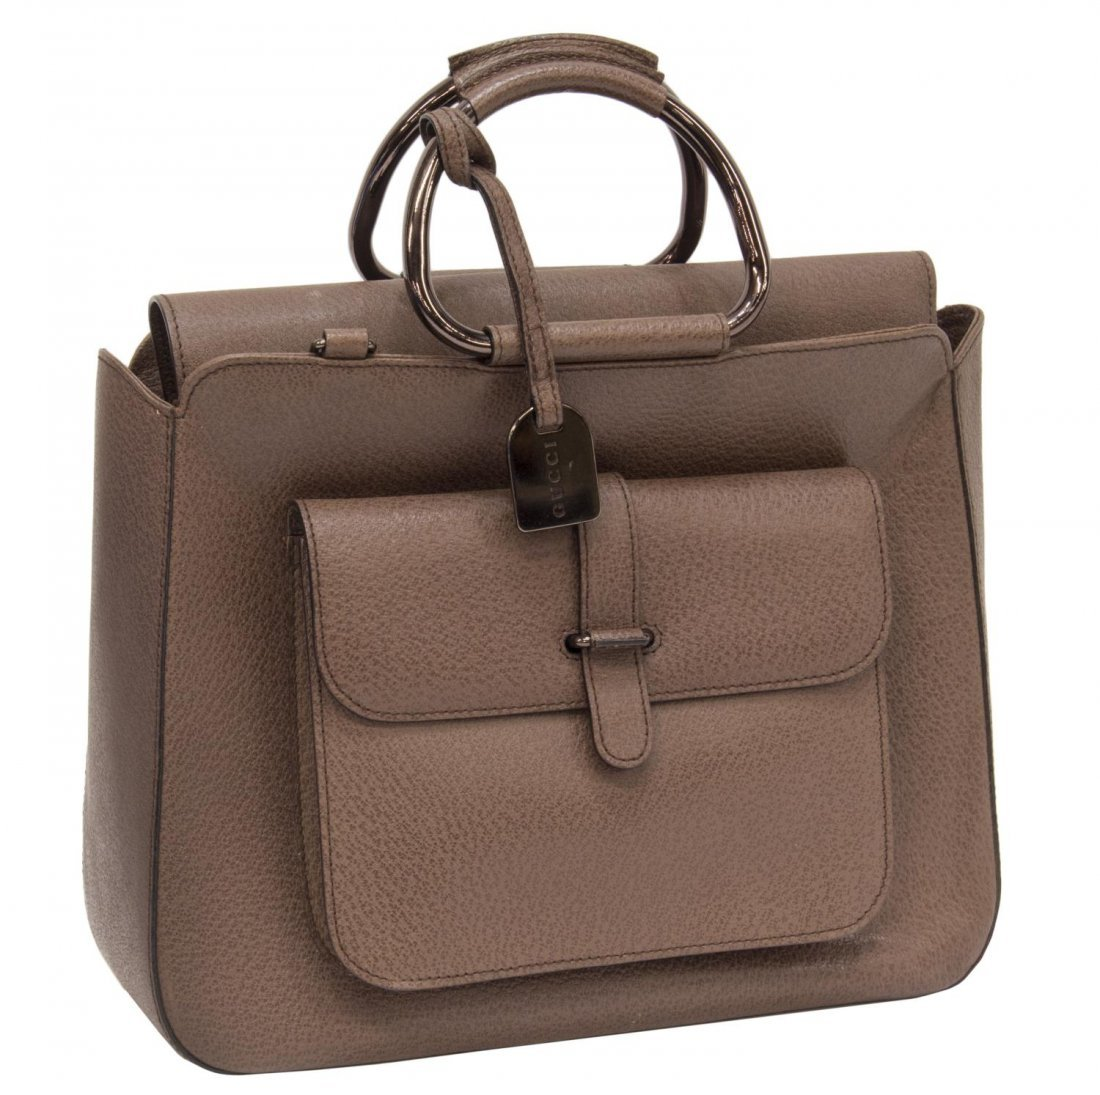 GUCCI BROWN SMALL GRAINED LEATHER HANDBAG